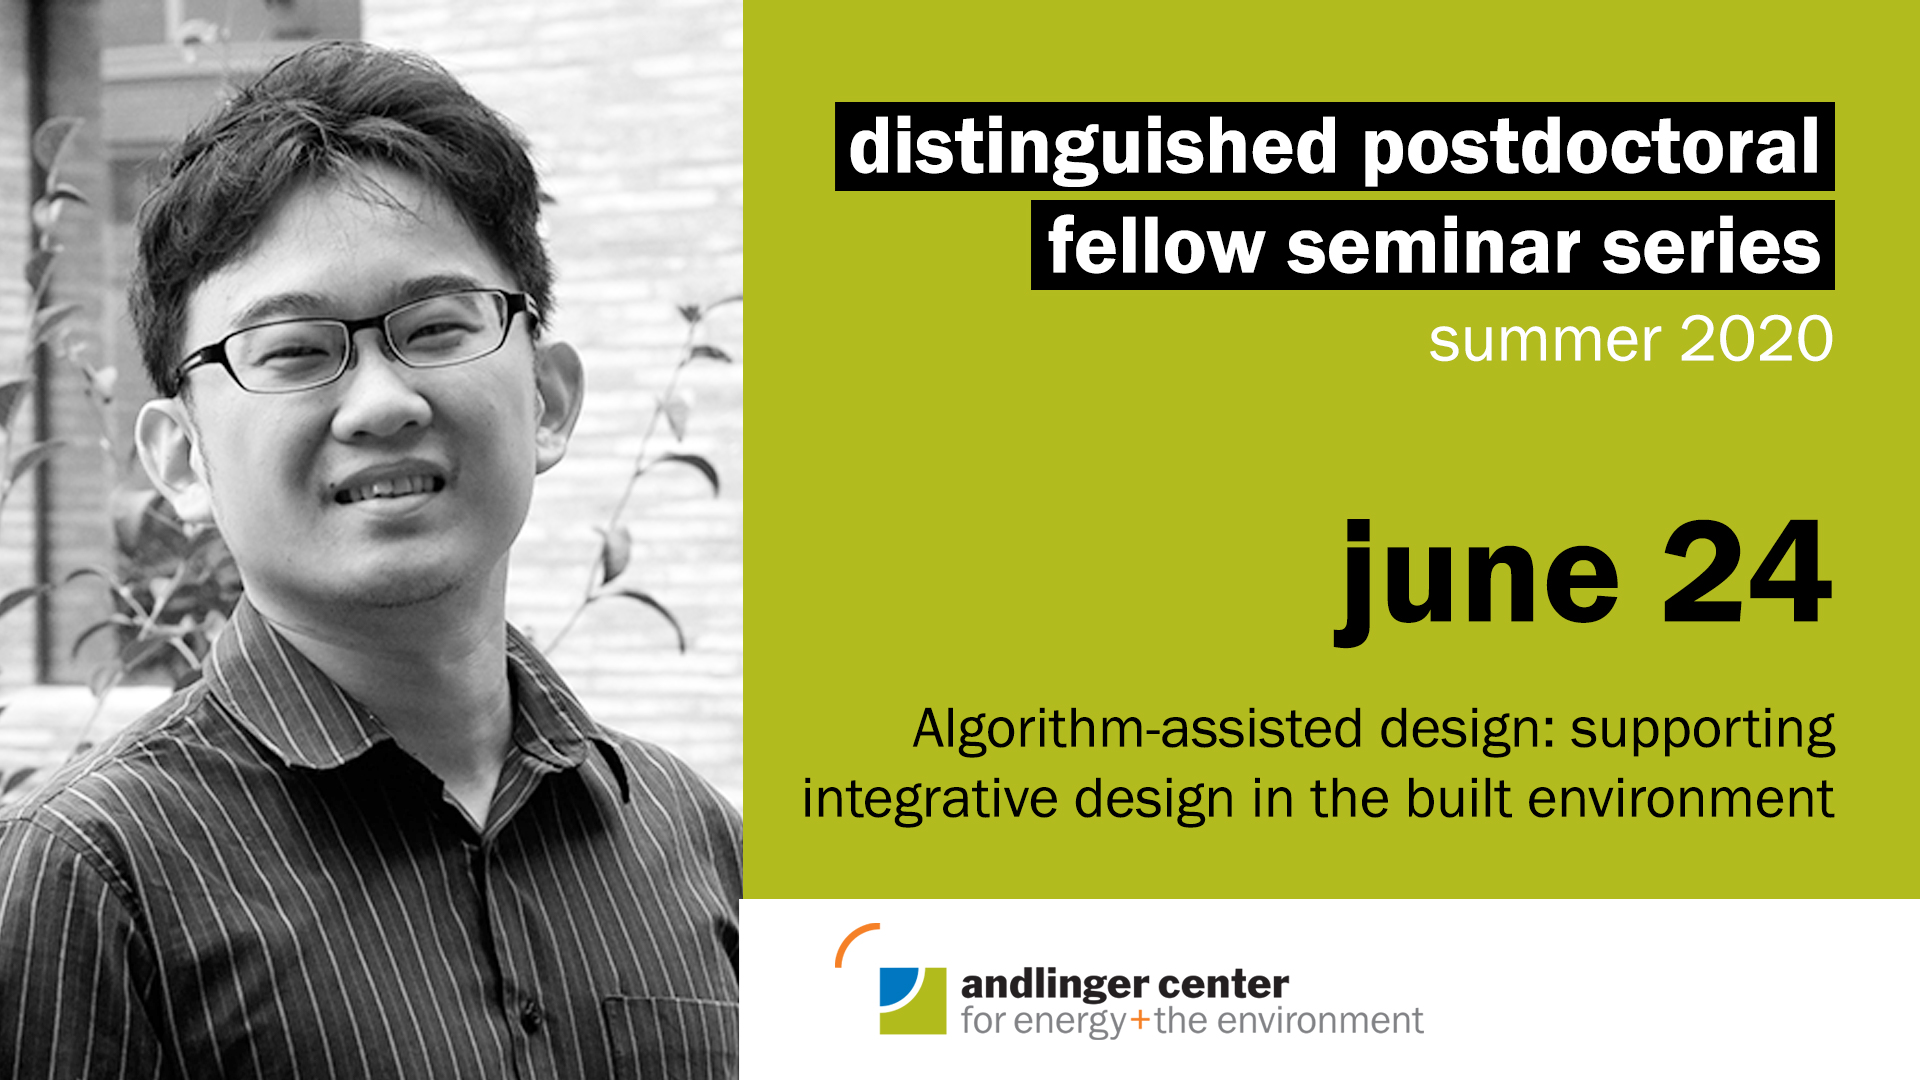 """June 24 at 2pmChen's research focuses on the development and use of digital tools to support the integrative design process for the built environment. Recently, he has extended his research to include using low-cost sensors and IoT devices in prototyping building design with innovative cooling and heating systems. Chen plans to further his research through developing collaborative tools that enable timely access to data and models to support multidisciplinary research/design of the built environment.Website 